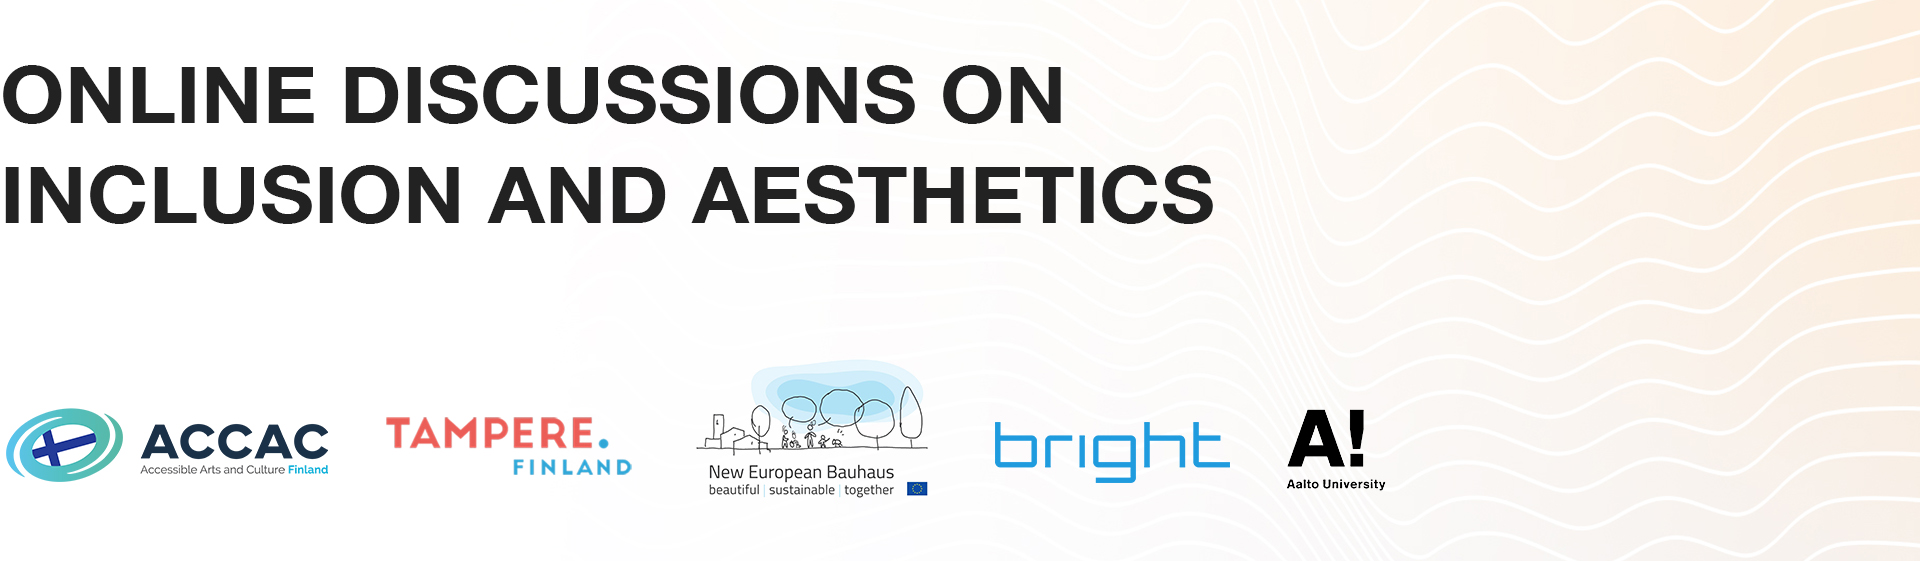 Online discussions on inclusion and aesthetics organised by Accessible Arts and Culture (ACCAC) Finland a New European Bauhaus partner. Co-organised with the city of Tampere, Bright Finland and Aalto University.